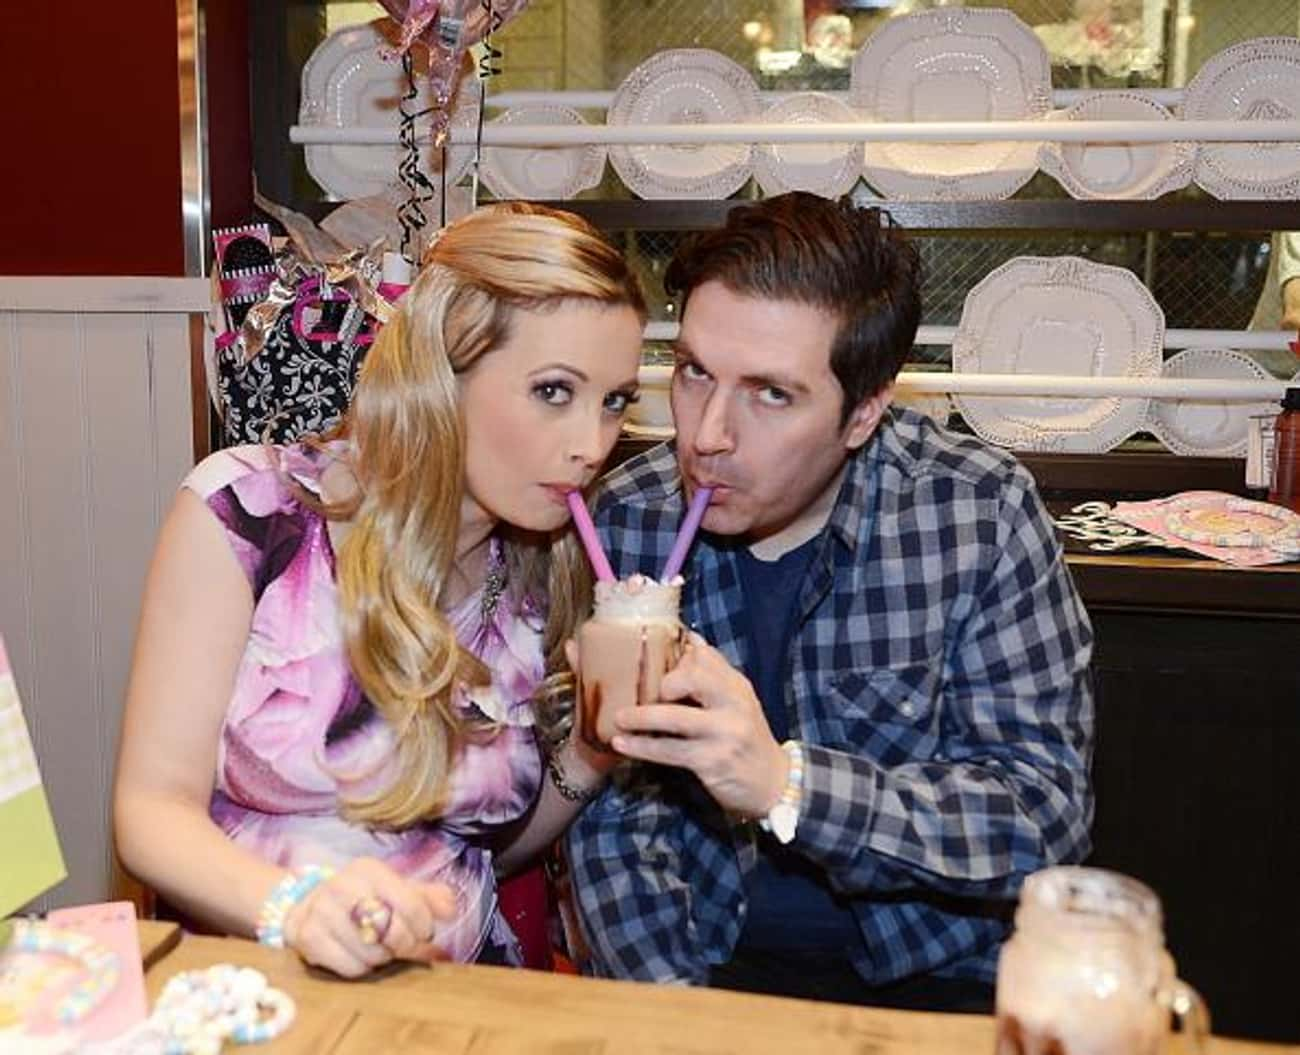 Pasquale Rotella is listed (or ranked) 1 on the list Holly Madison's Loves & Hookups